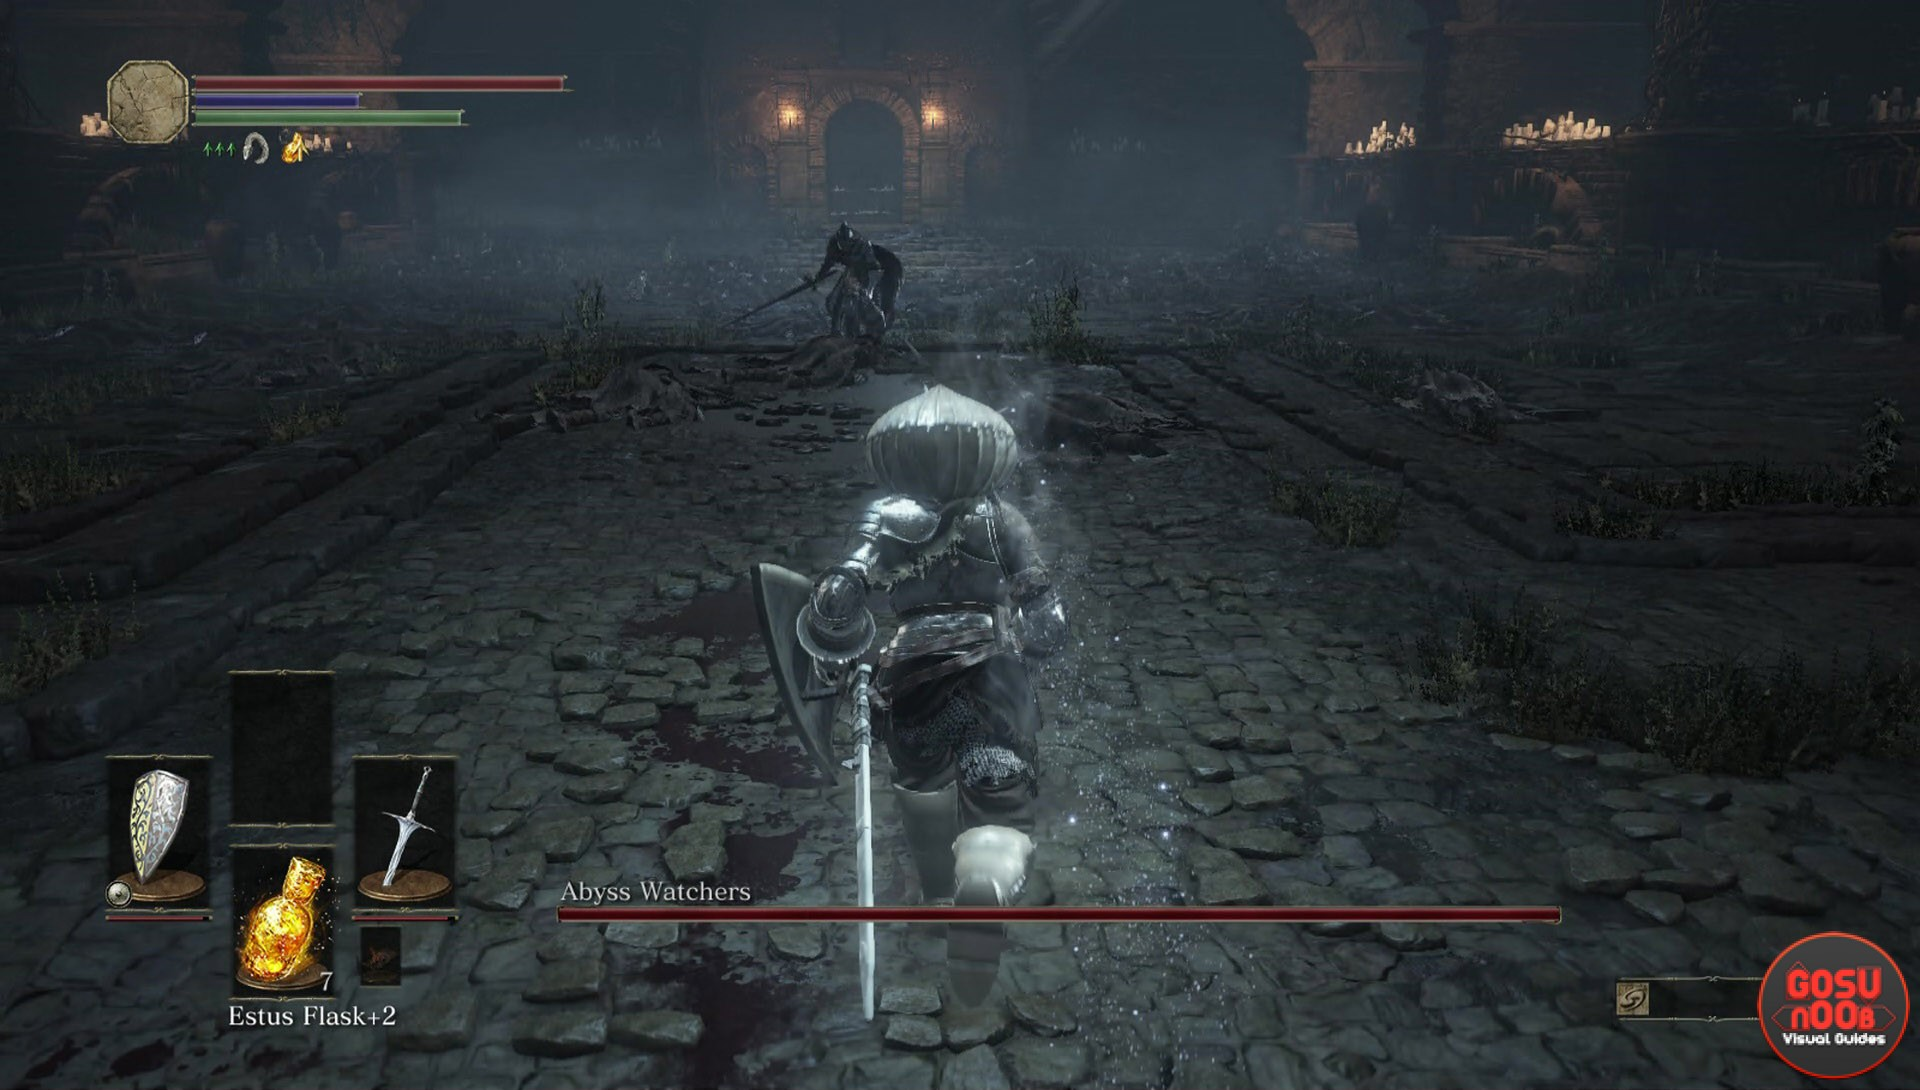 Abyss watchers boss guide dark souls 3 - Watchers dark souls 3 ...